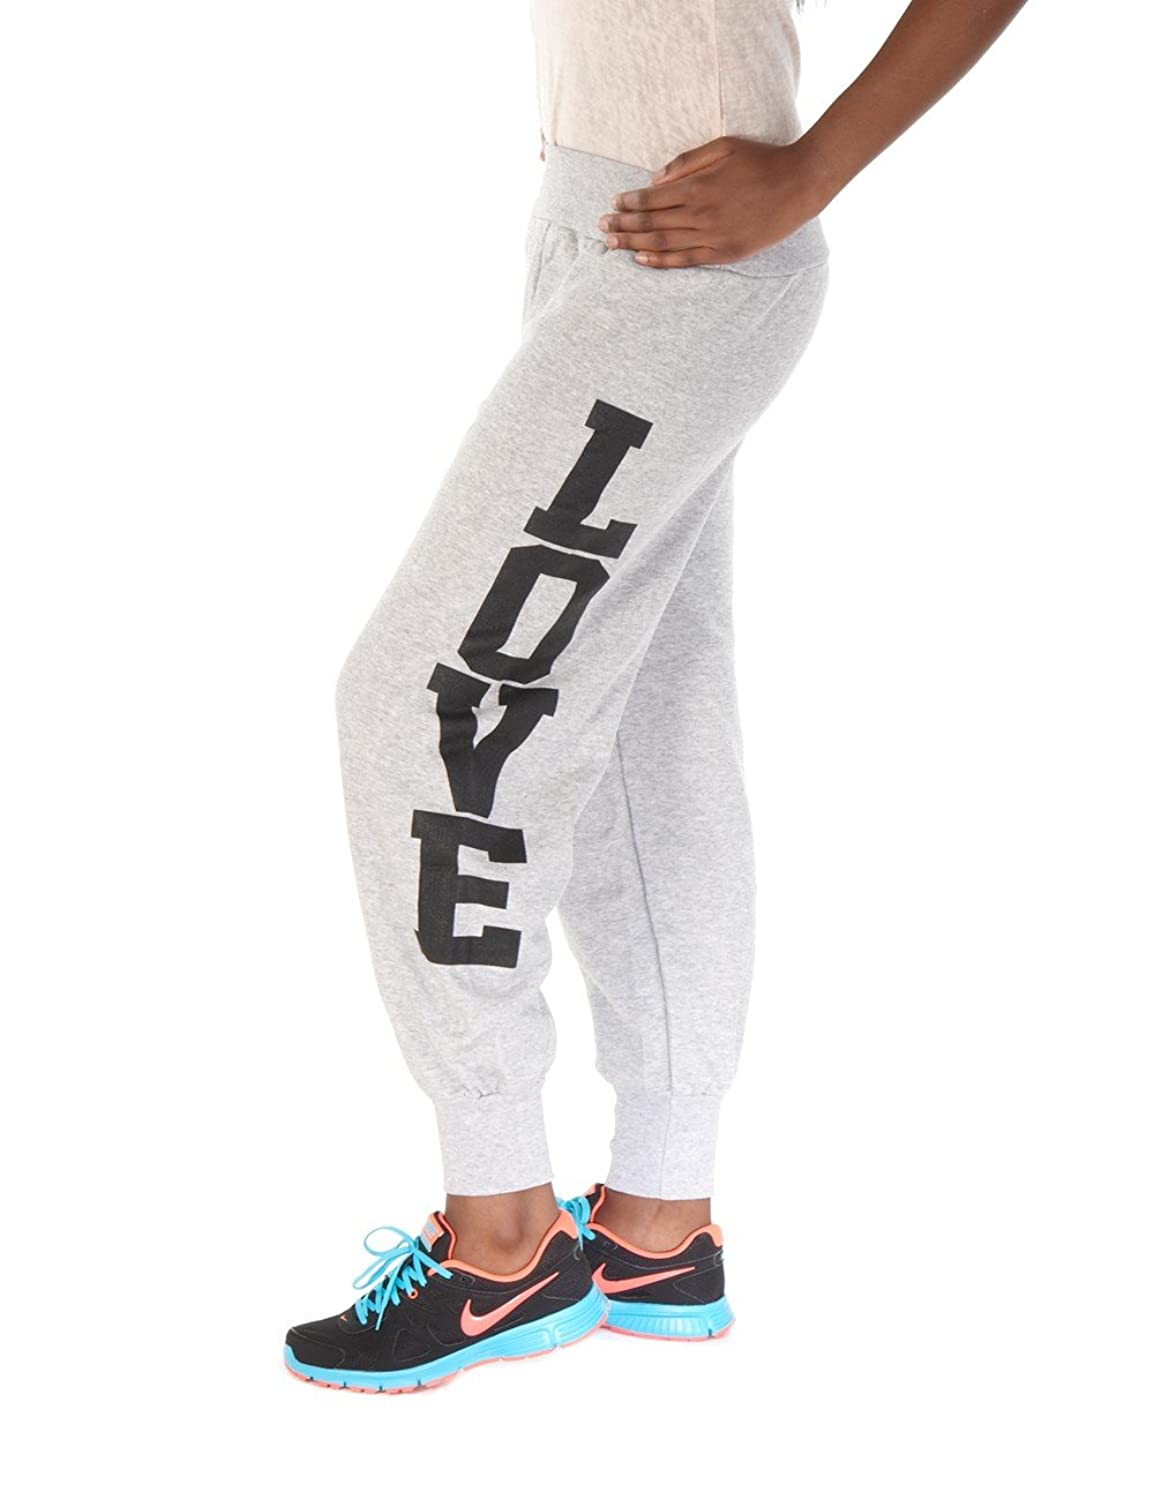 Balingi Joggers with trendy side print BA10249